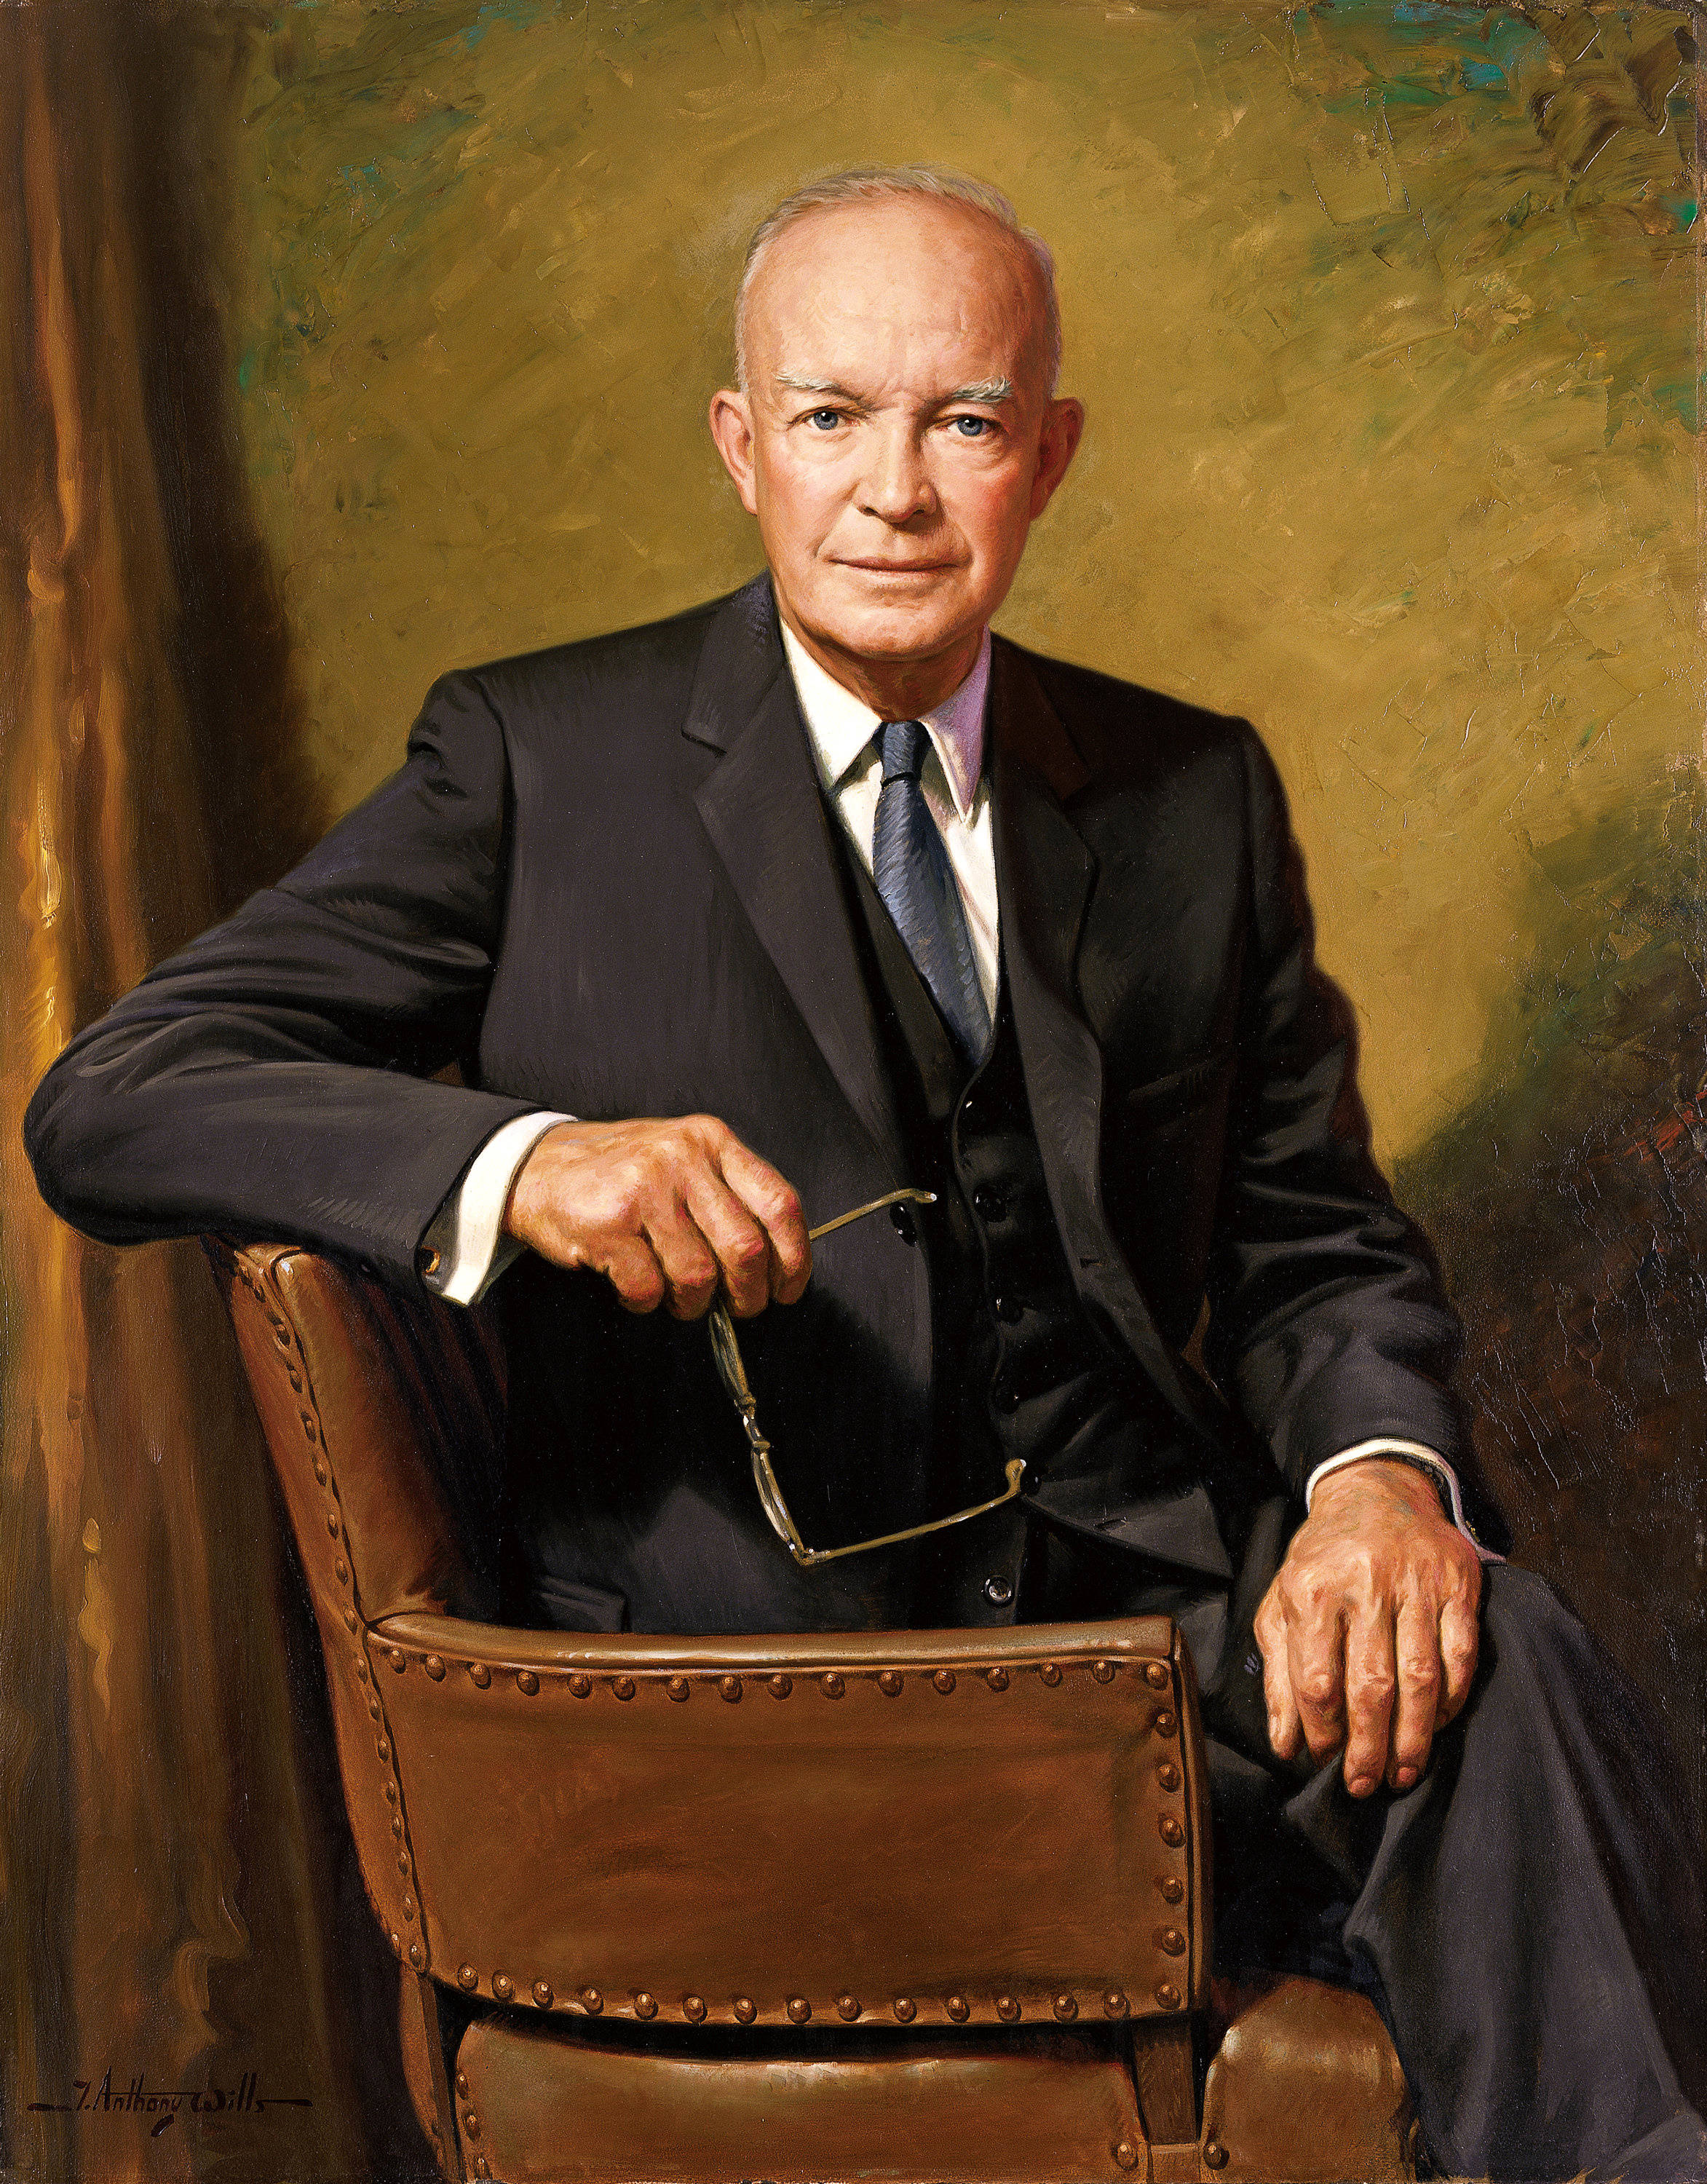 /www.aklander.co.uk/image/catalog/Dwight_D._Eisenhower,_official_Presidential_portrait